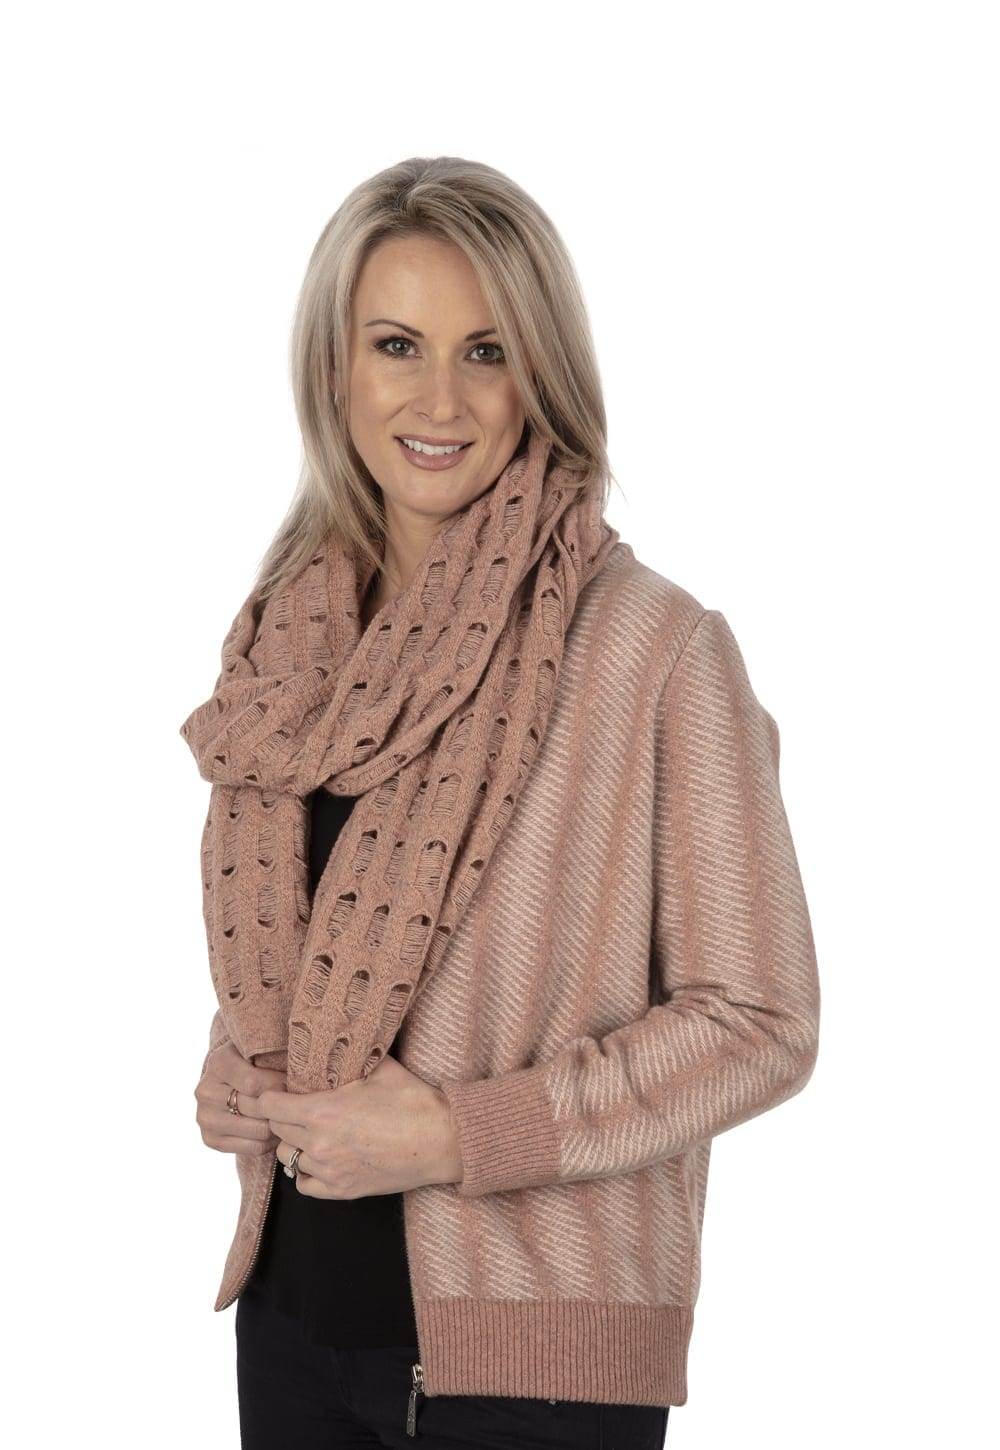 Possum merino ladder scarf and Bomber jacket in pearl